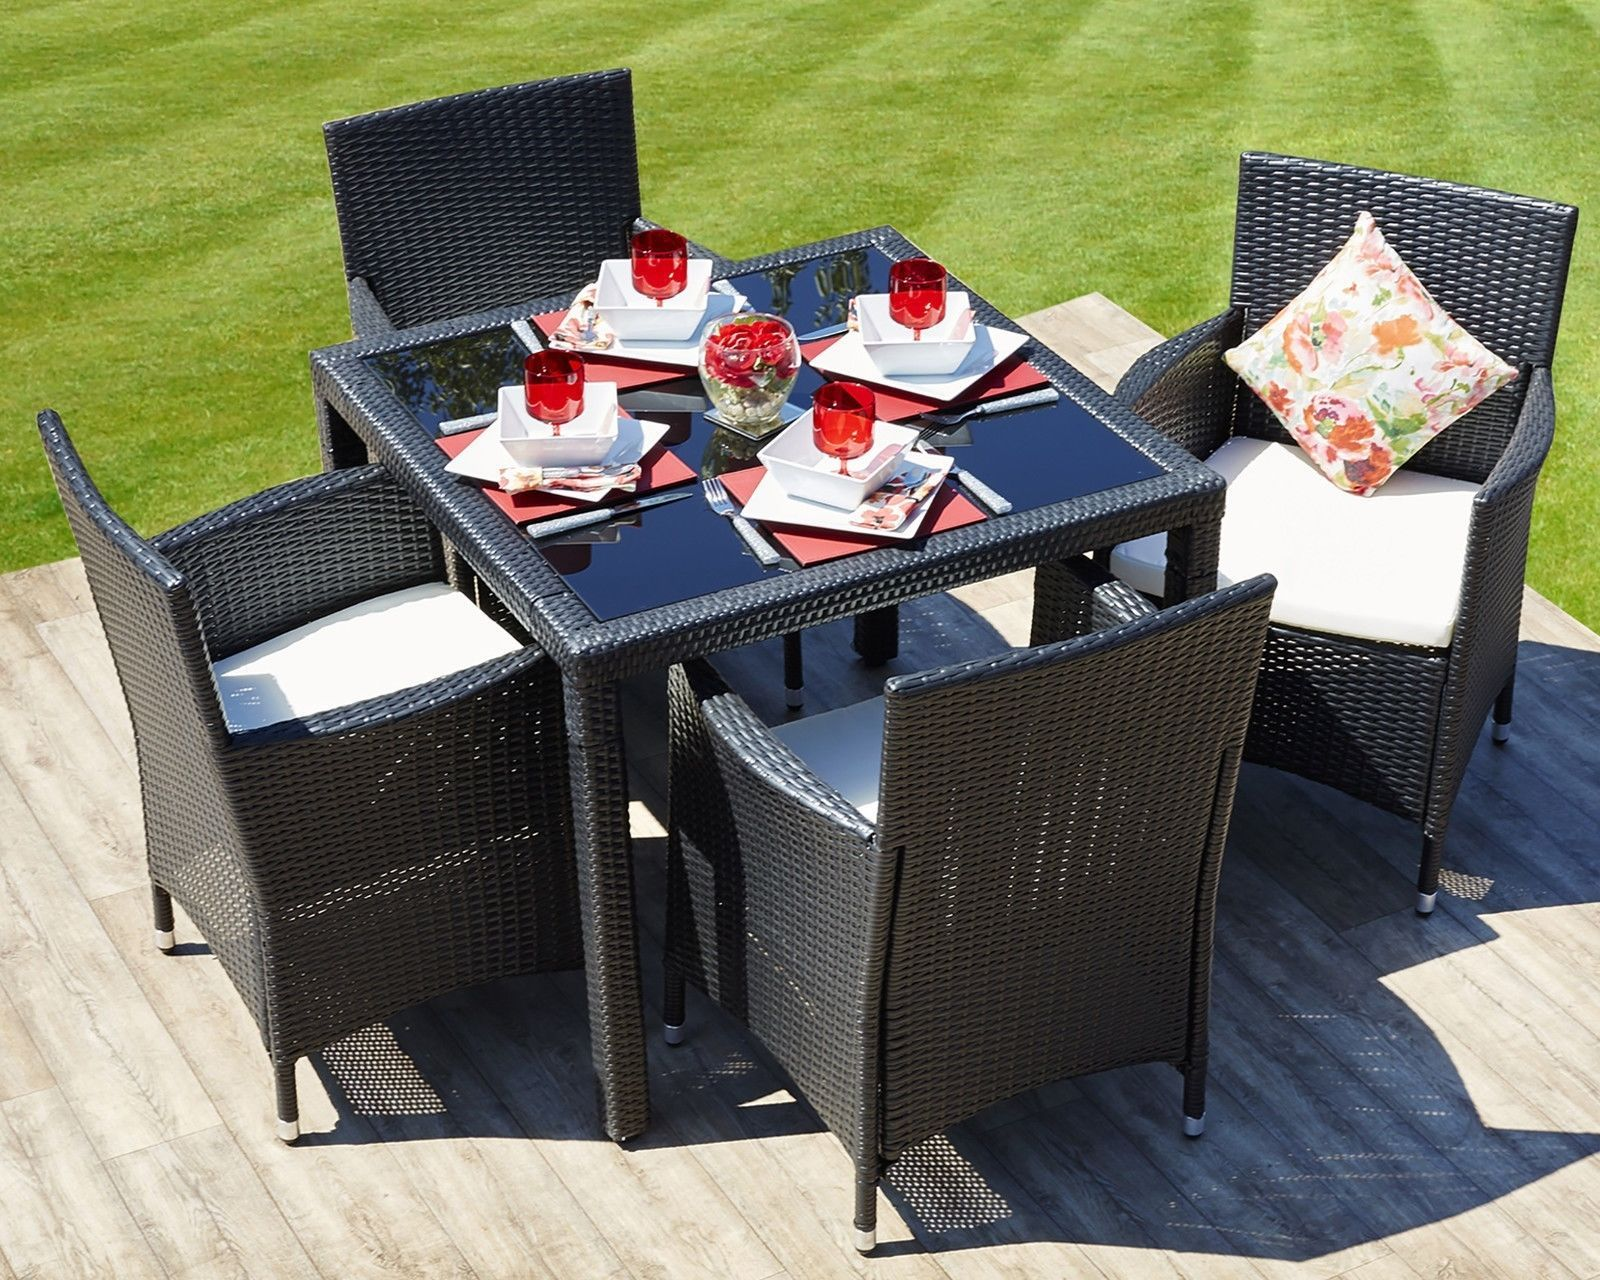 Outdoor Dining Table Set 4 Chairs Rattan Conservatory Patio Furniture Black